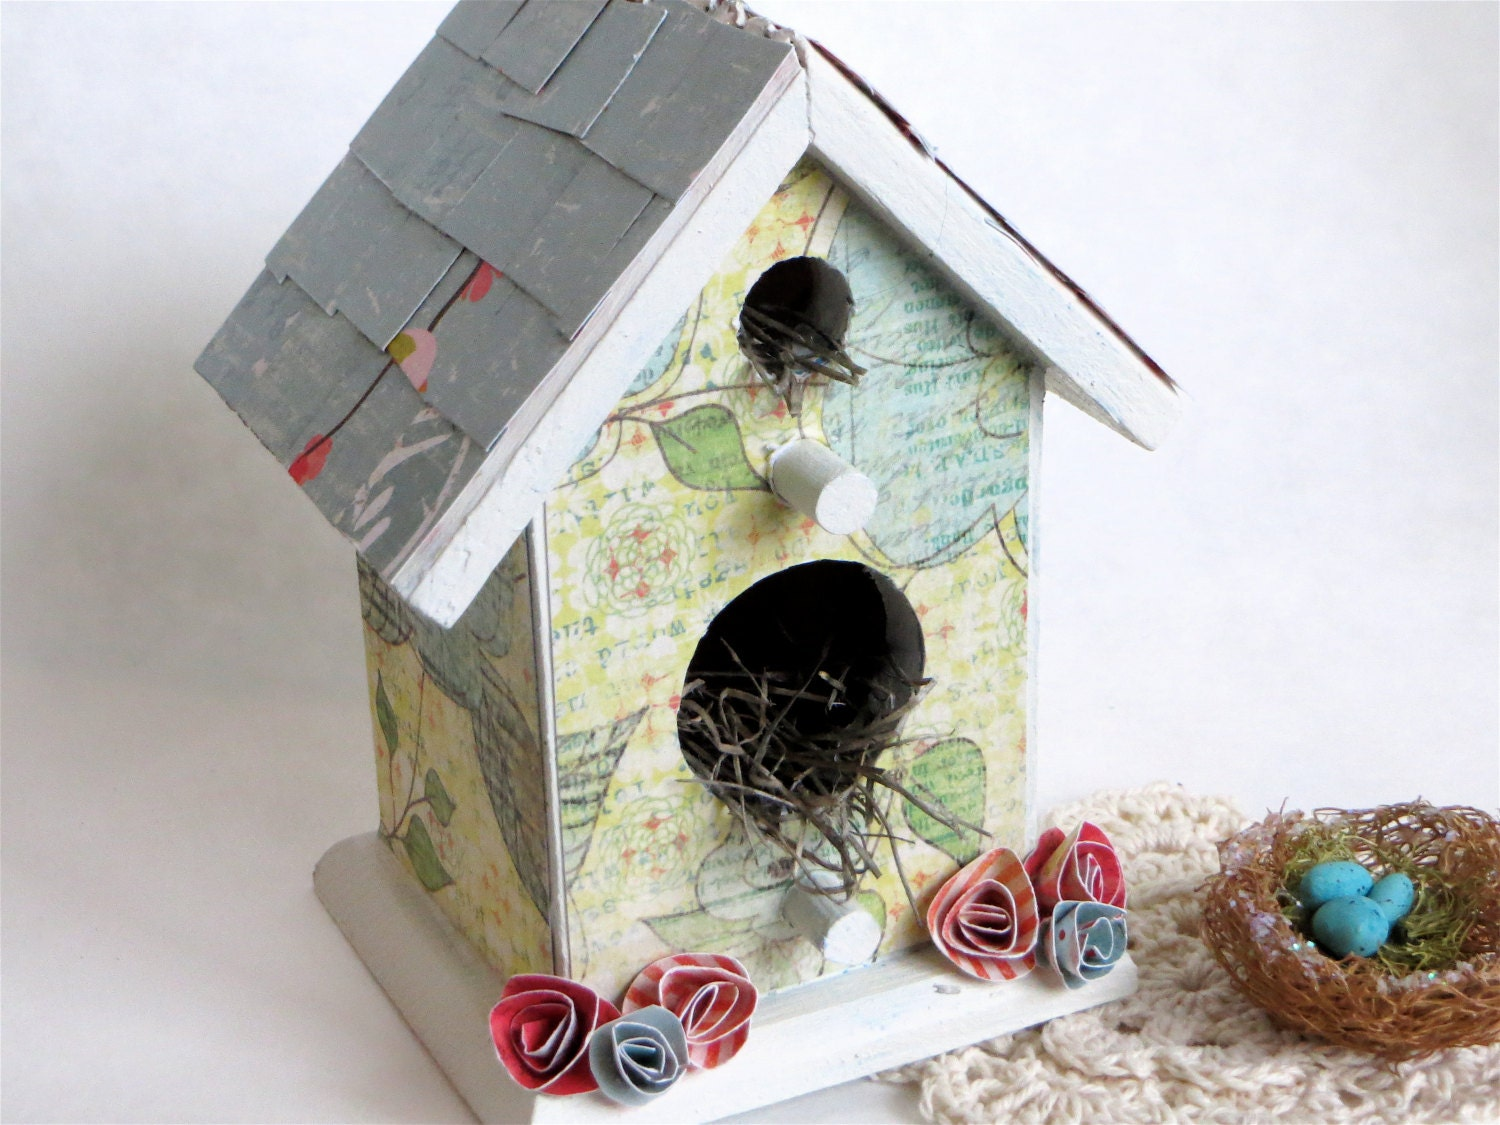 Spring Bird House Decorative Birdhouse Birdhouse Ornament